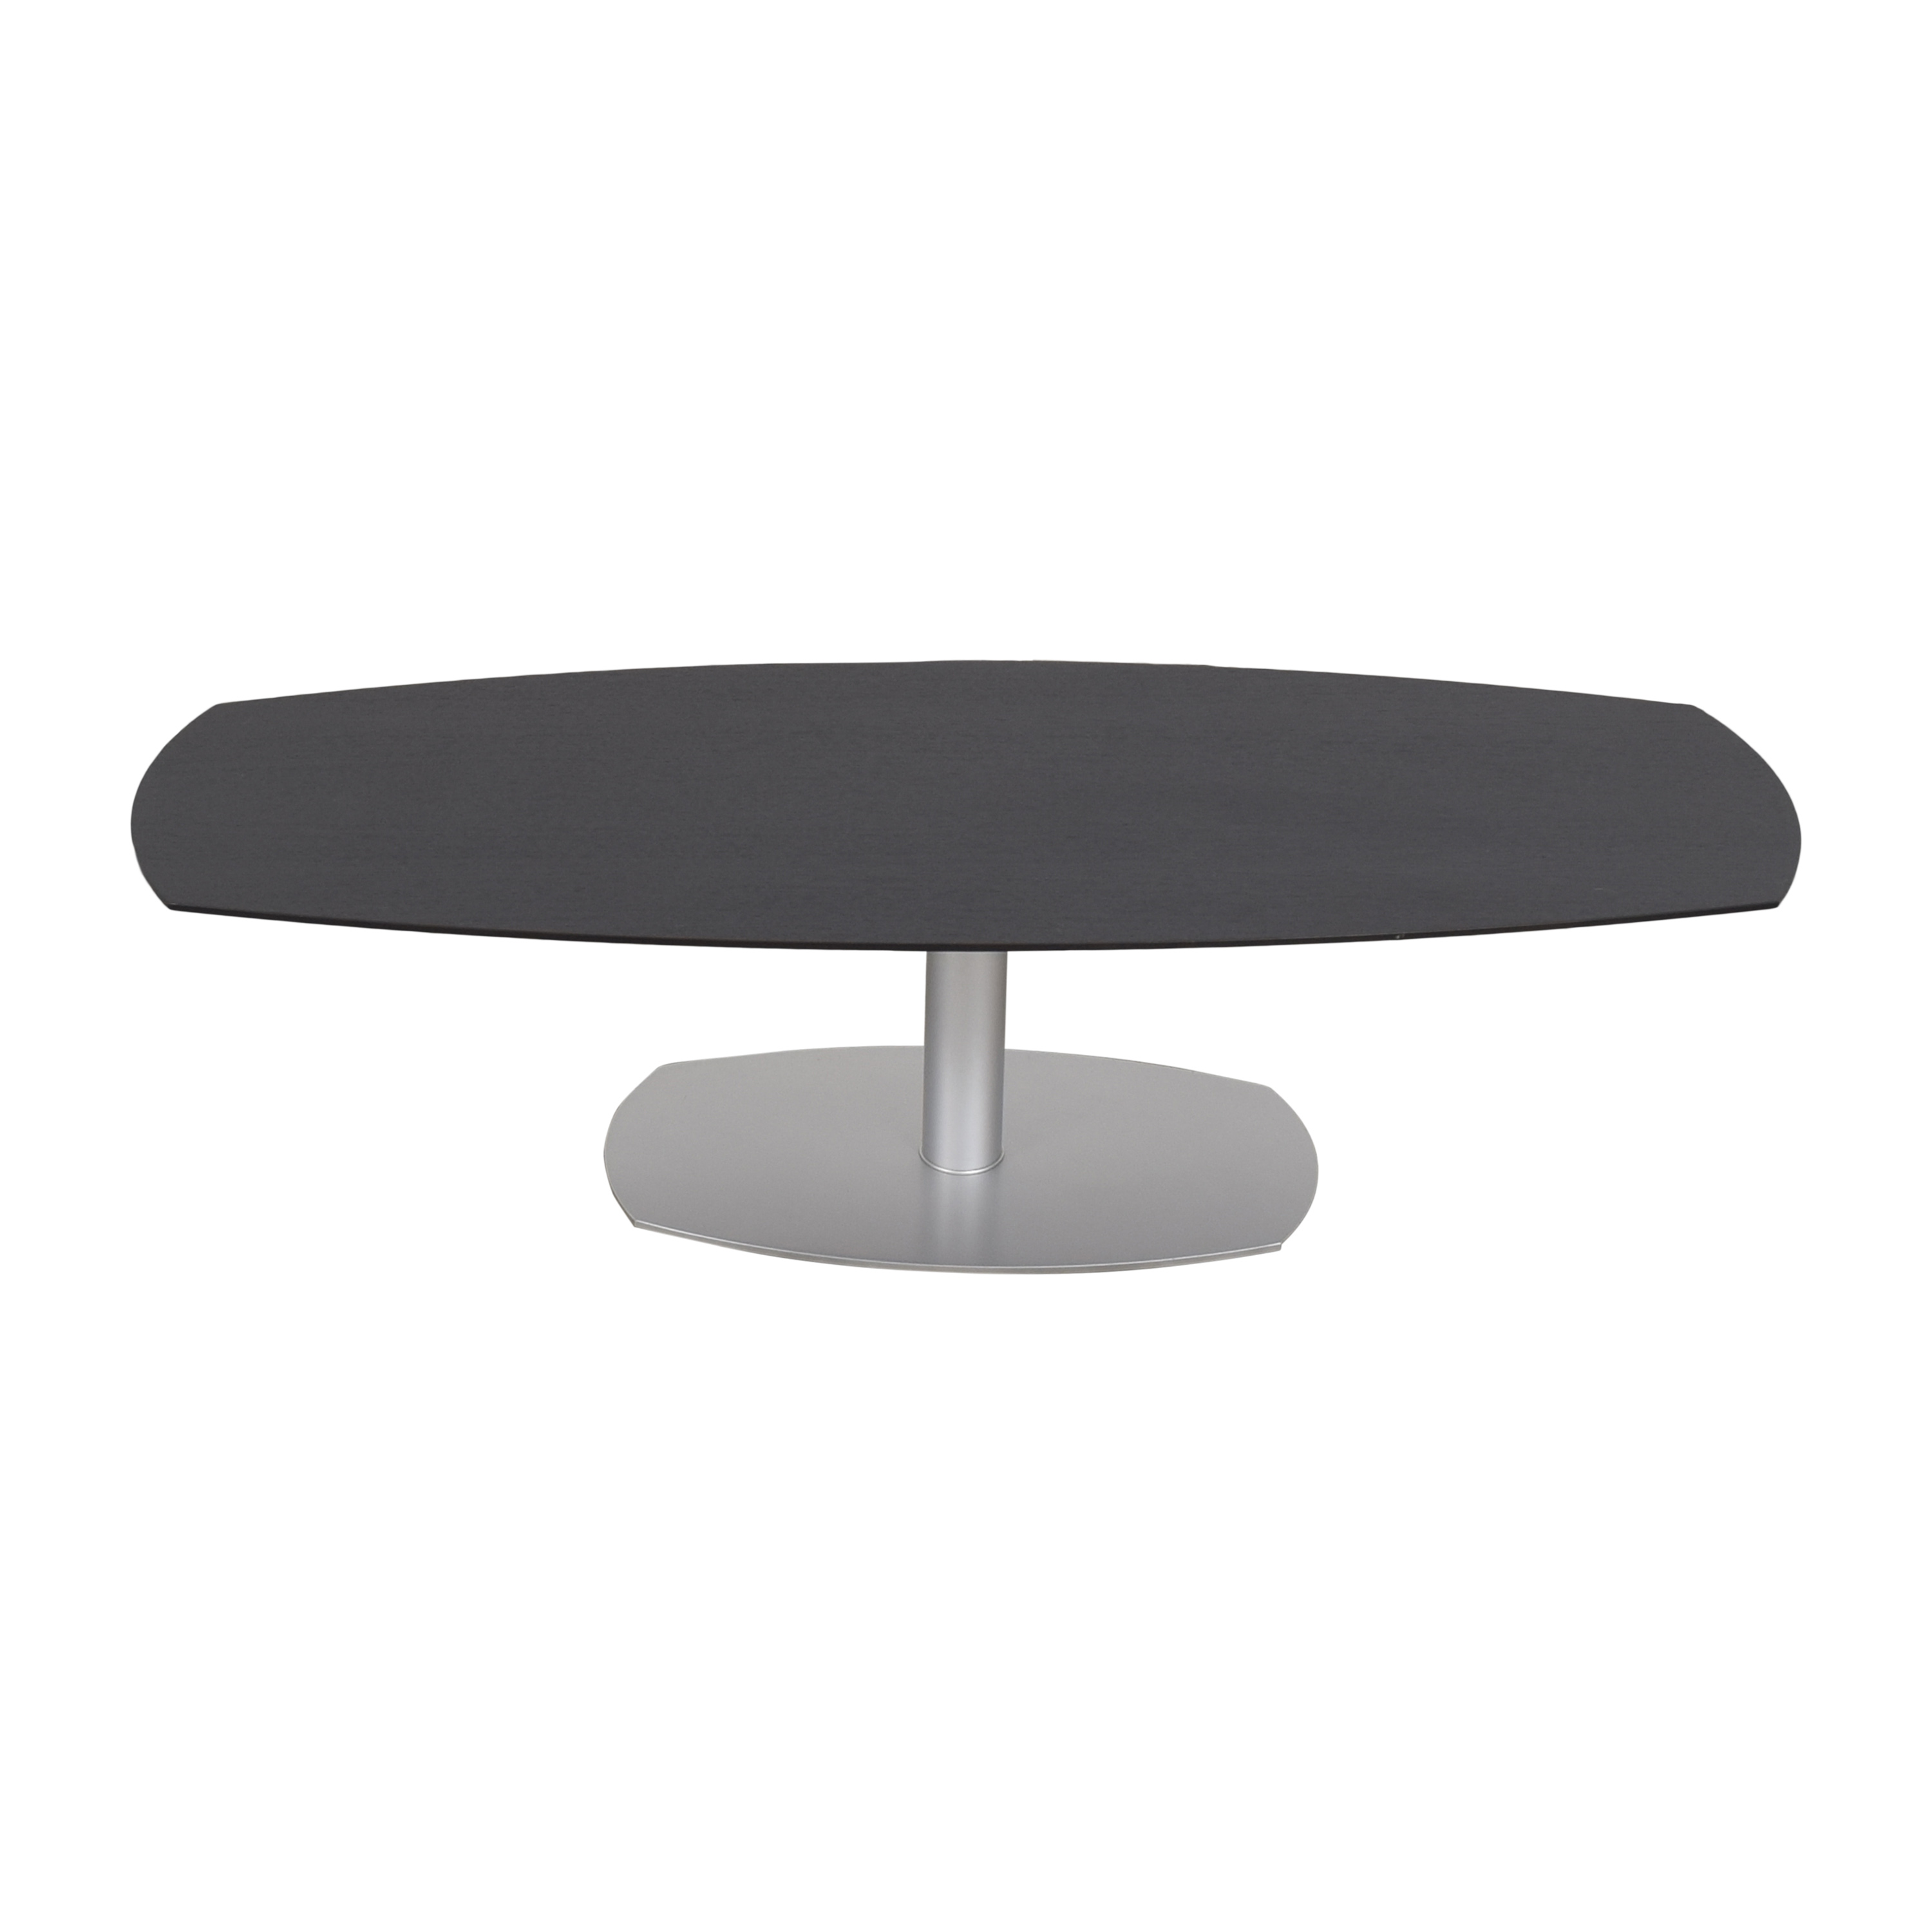 Pedestal Coffee Table / Coffee Tables